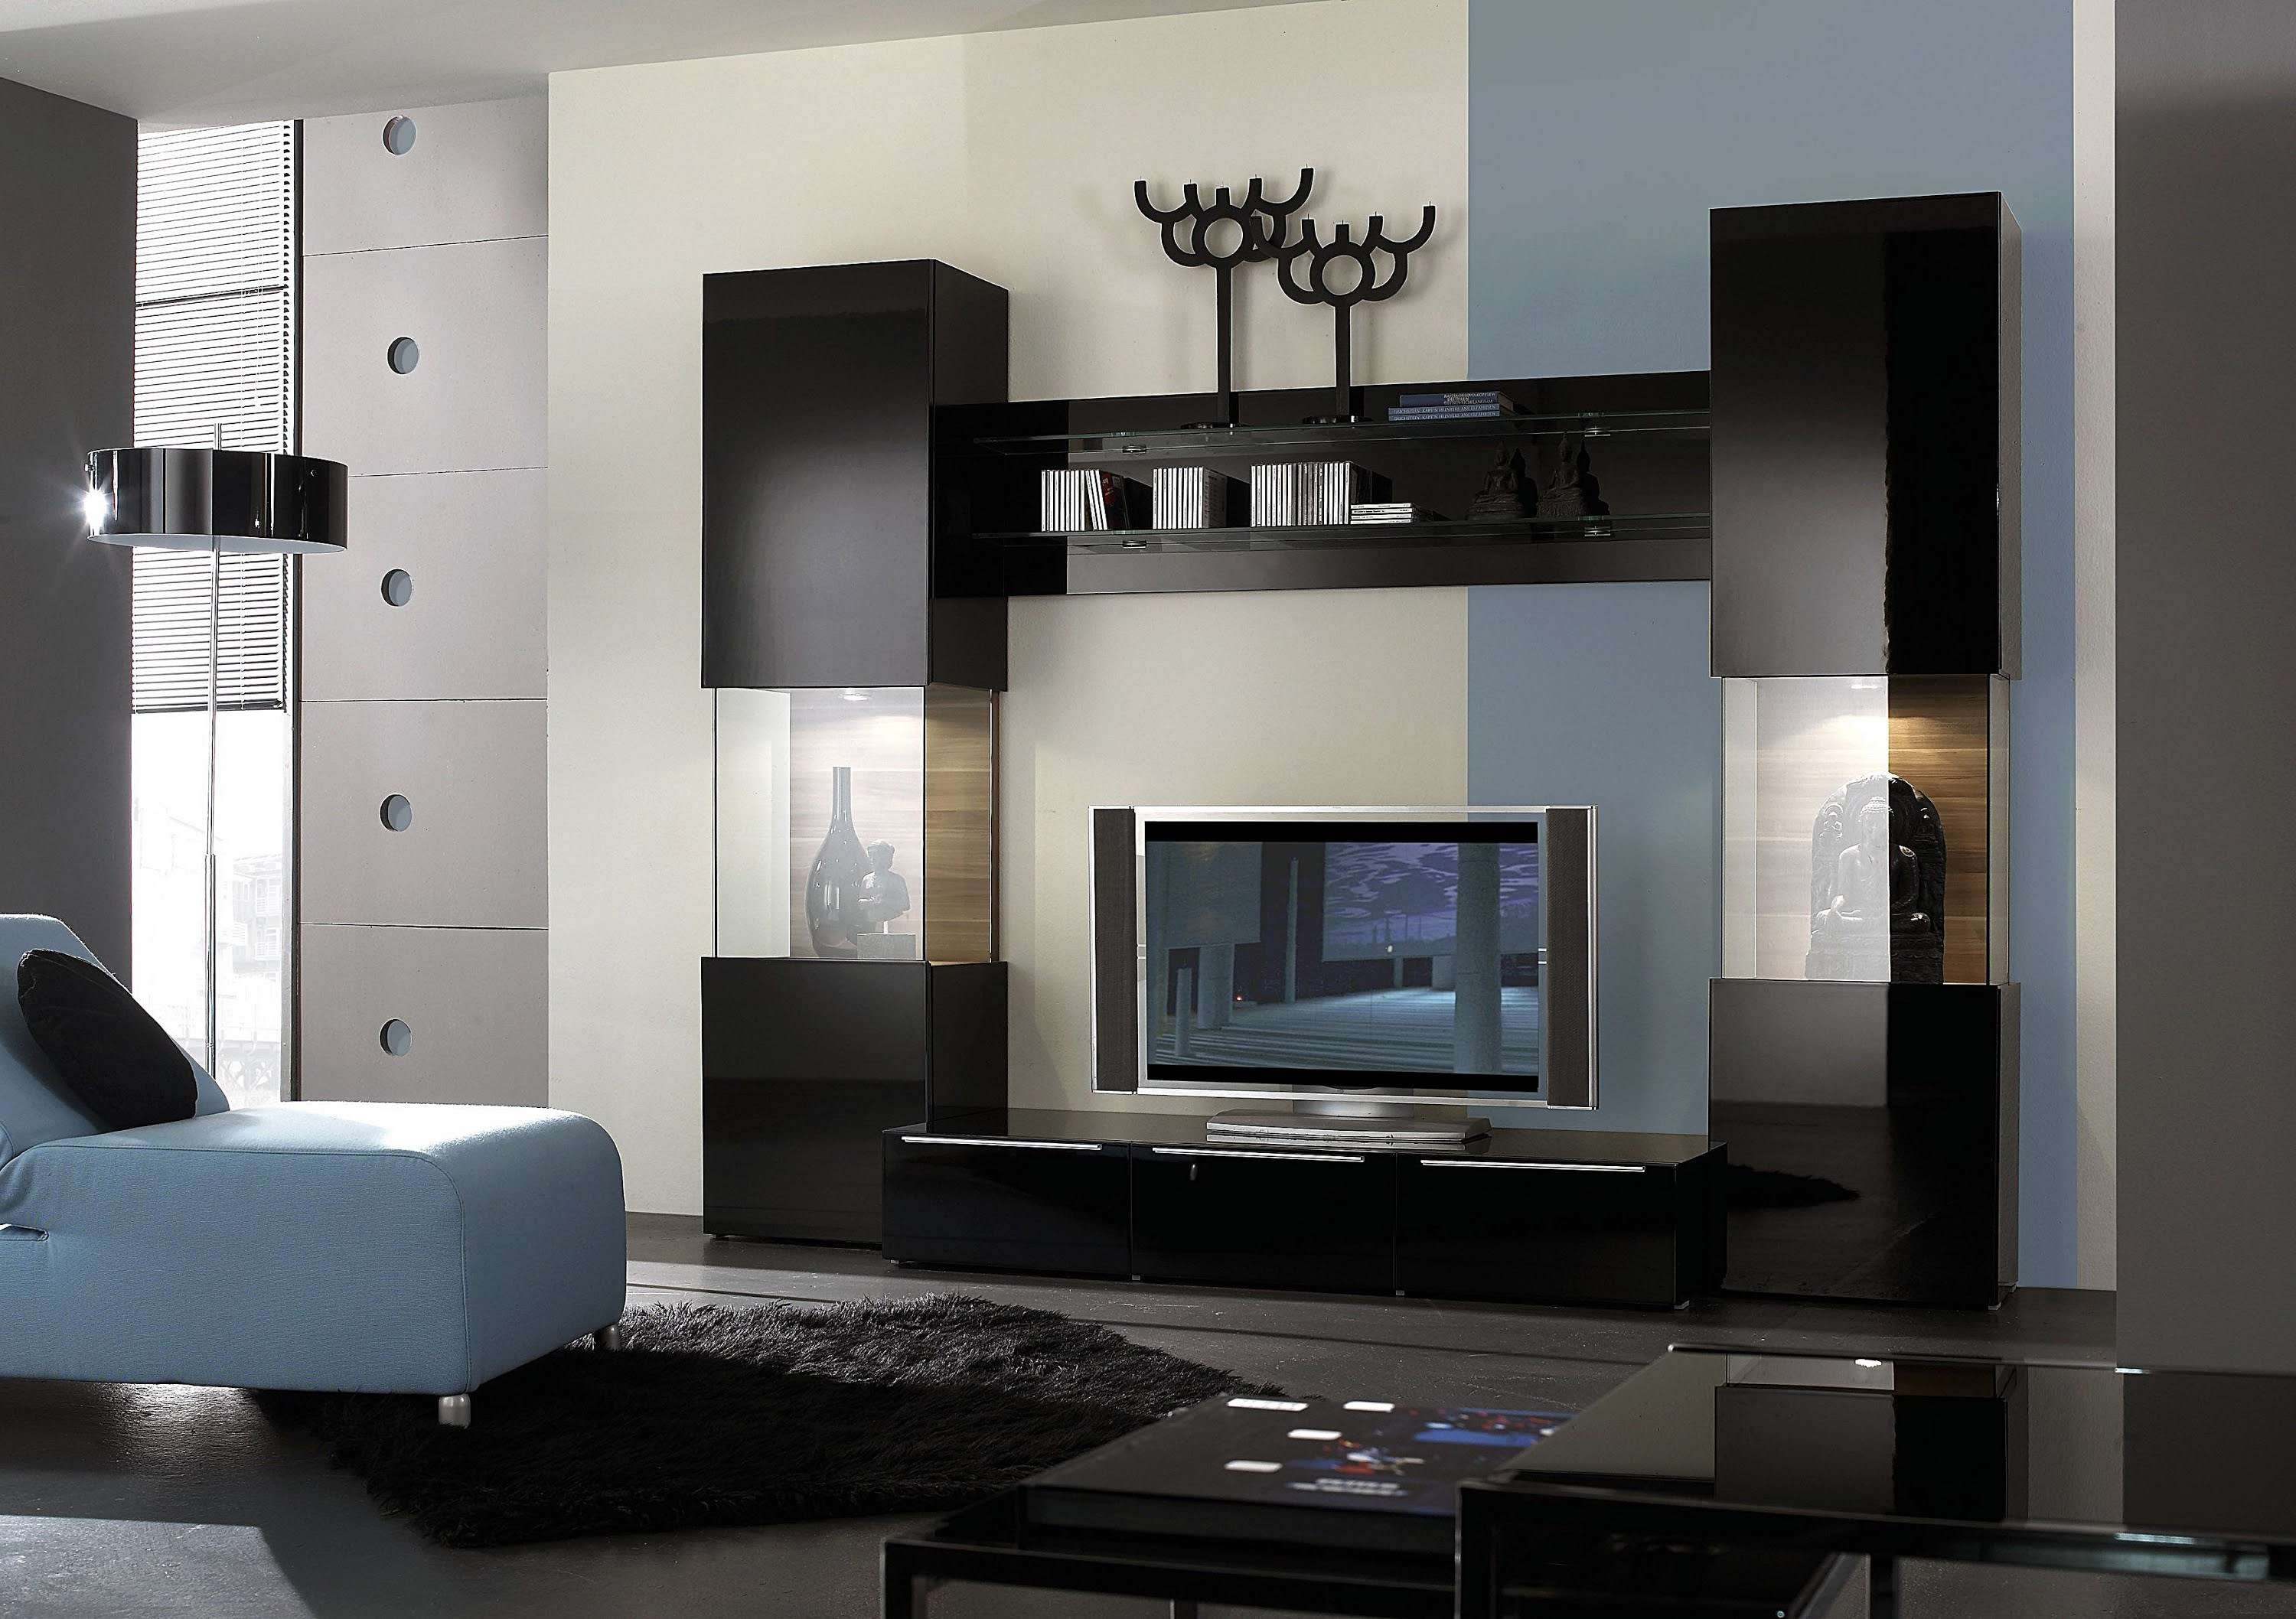 20 Modern Tv Unit Design Ideas For Bedroom & Living Room With Pictures Throughout Modern Design Tv Cabinets (View 6 of 20)